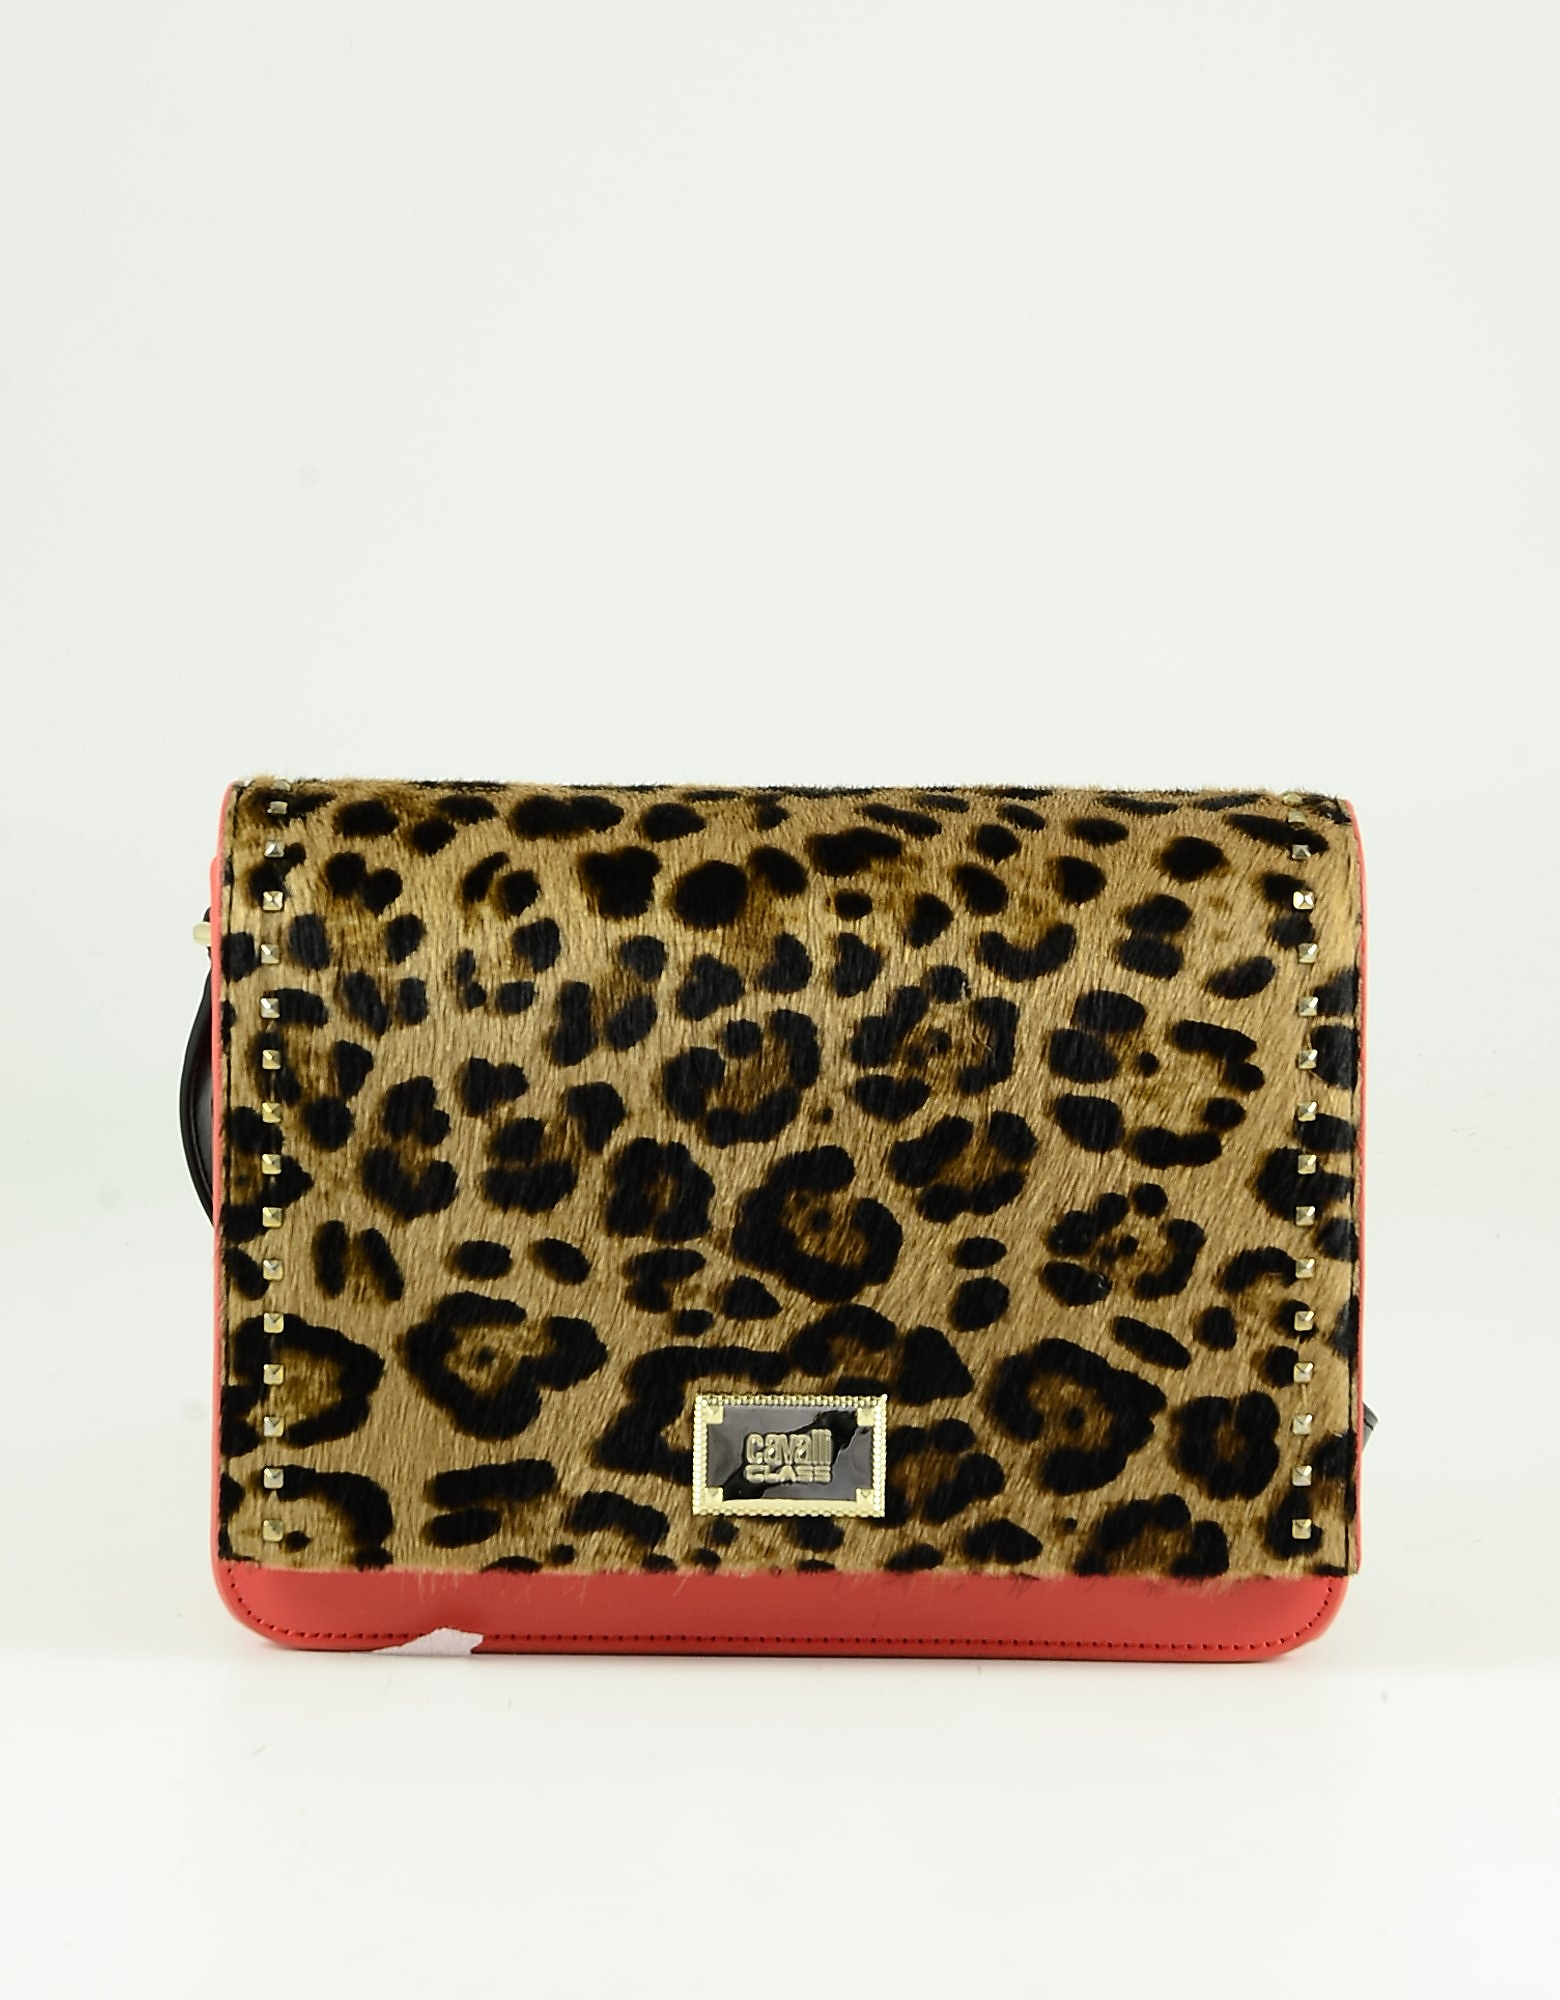 Class Roberto Cavalli Animal Printed And Red Hair-calf Leather Shoulder Bag In Bronze